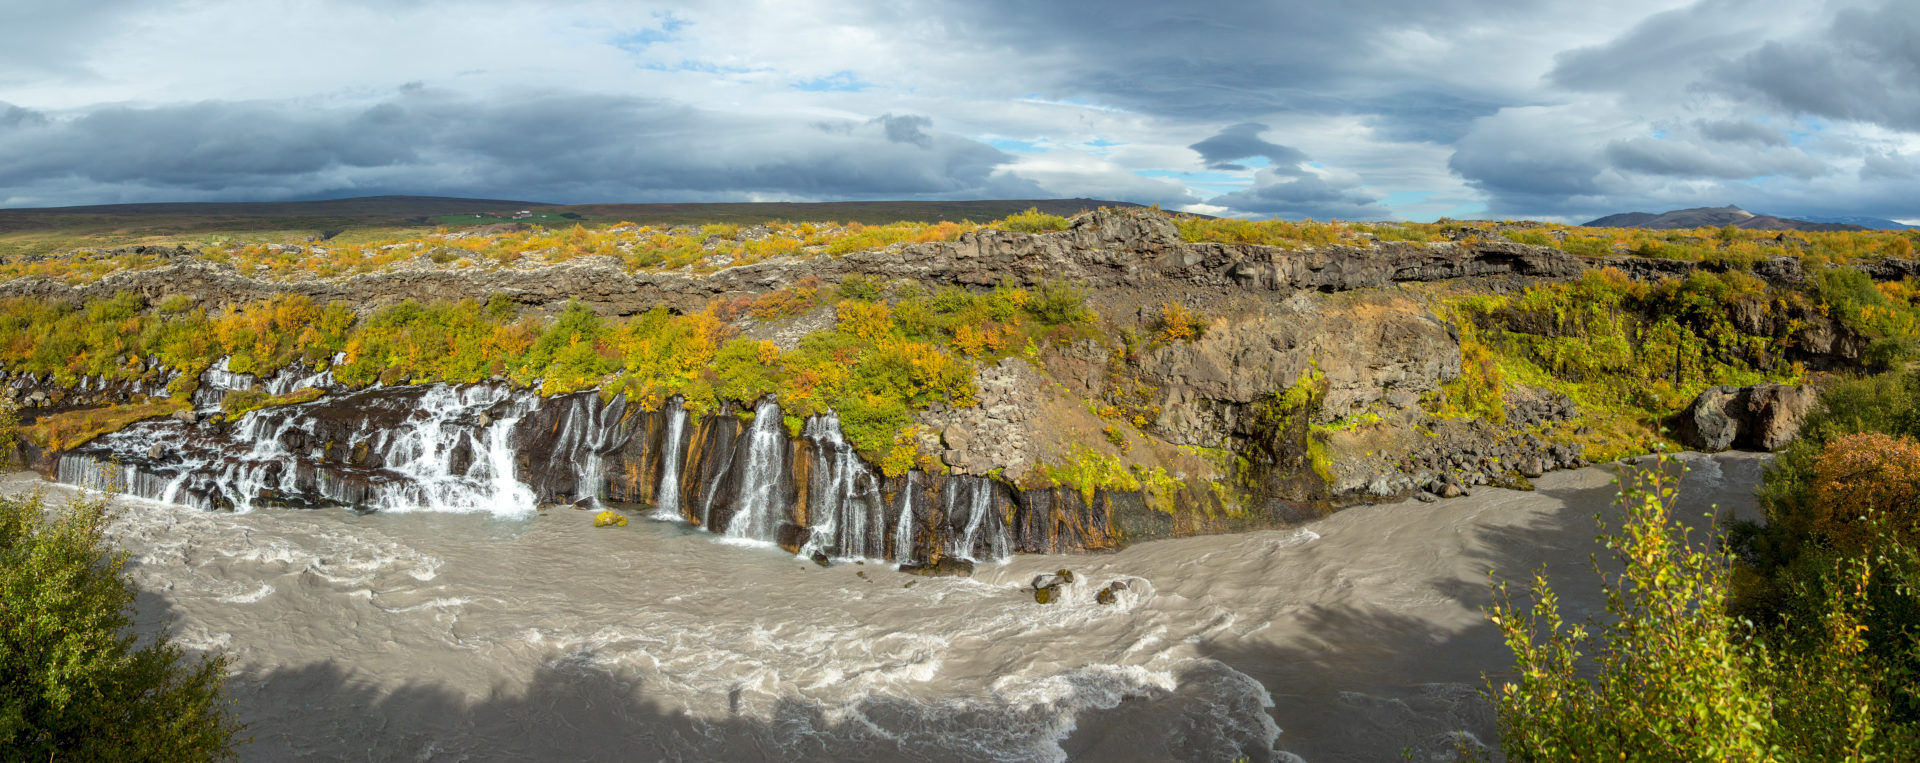 Iceland, Barnafoss, West Iceland, autumn colors, cloudy mood, dirty meltwater,